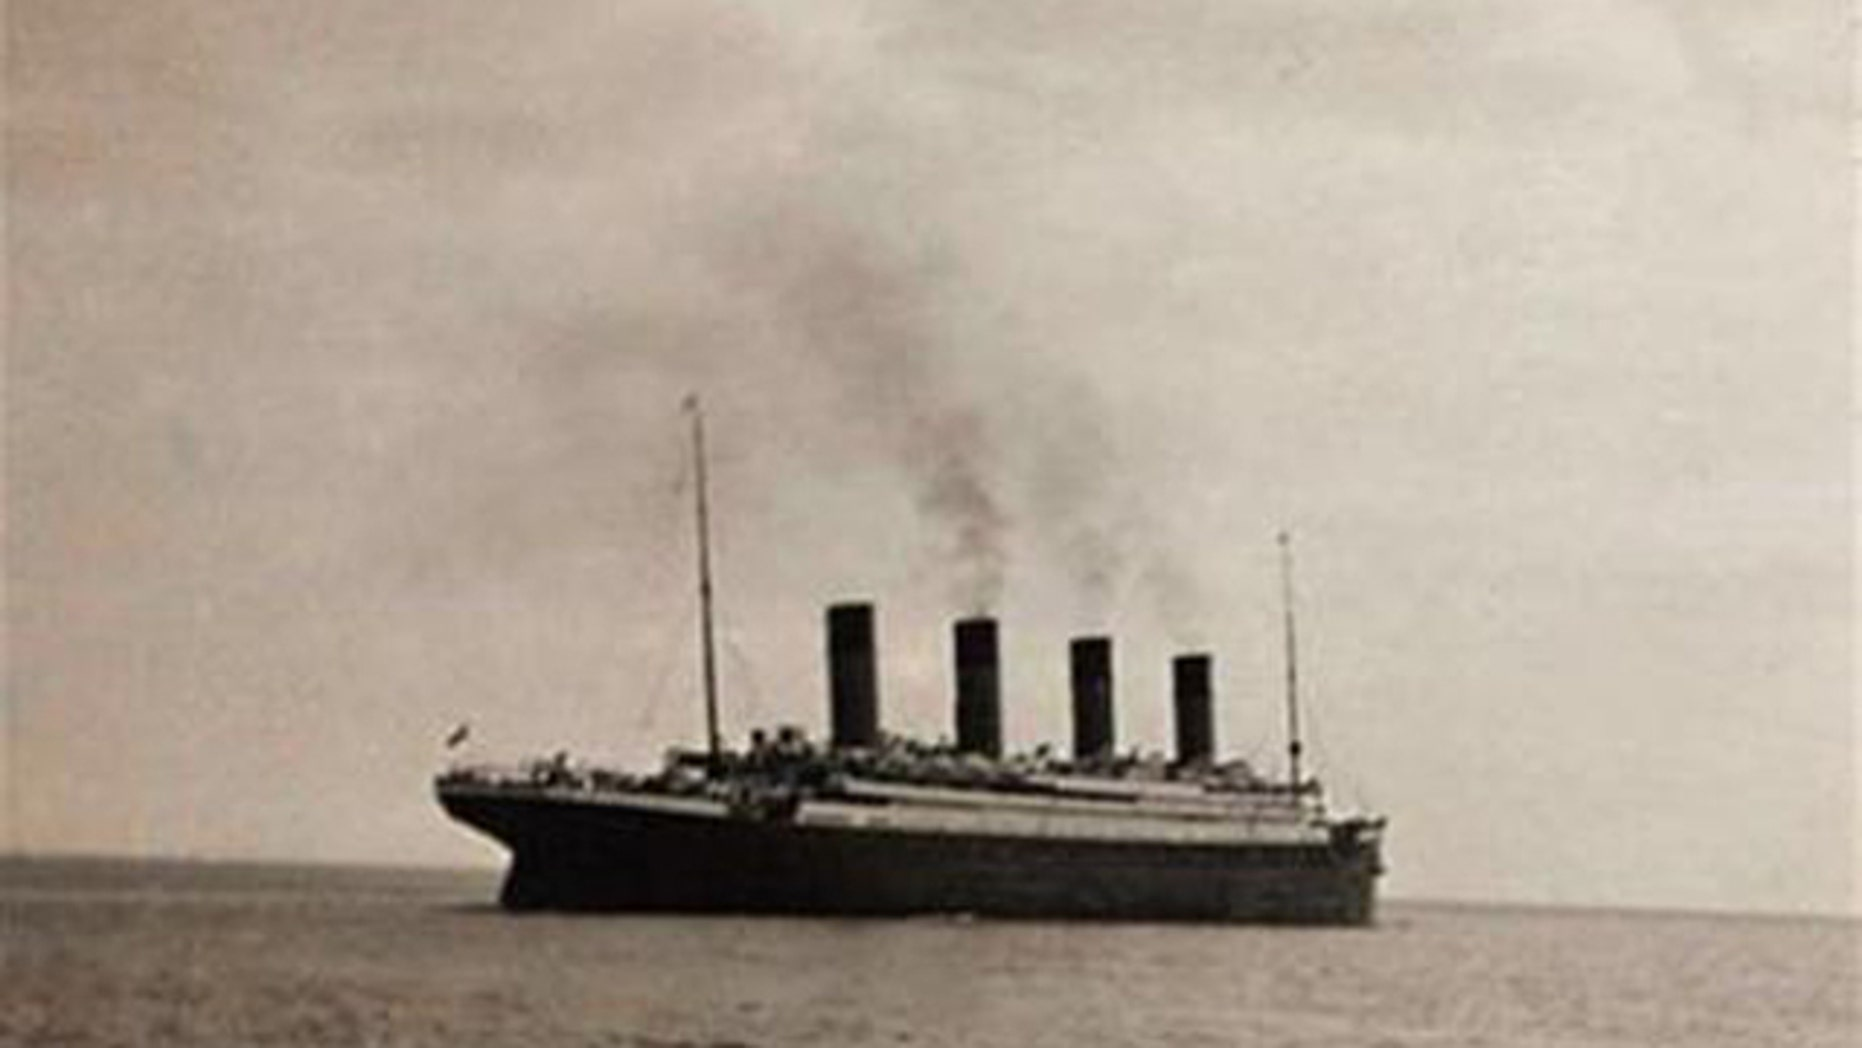 The RMS Titanic in what is thought to be the last known image of the ship as she sets sail from Queenstown for New York.